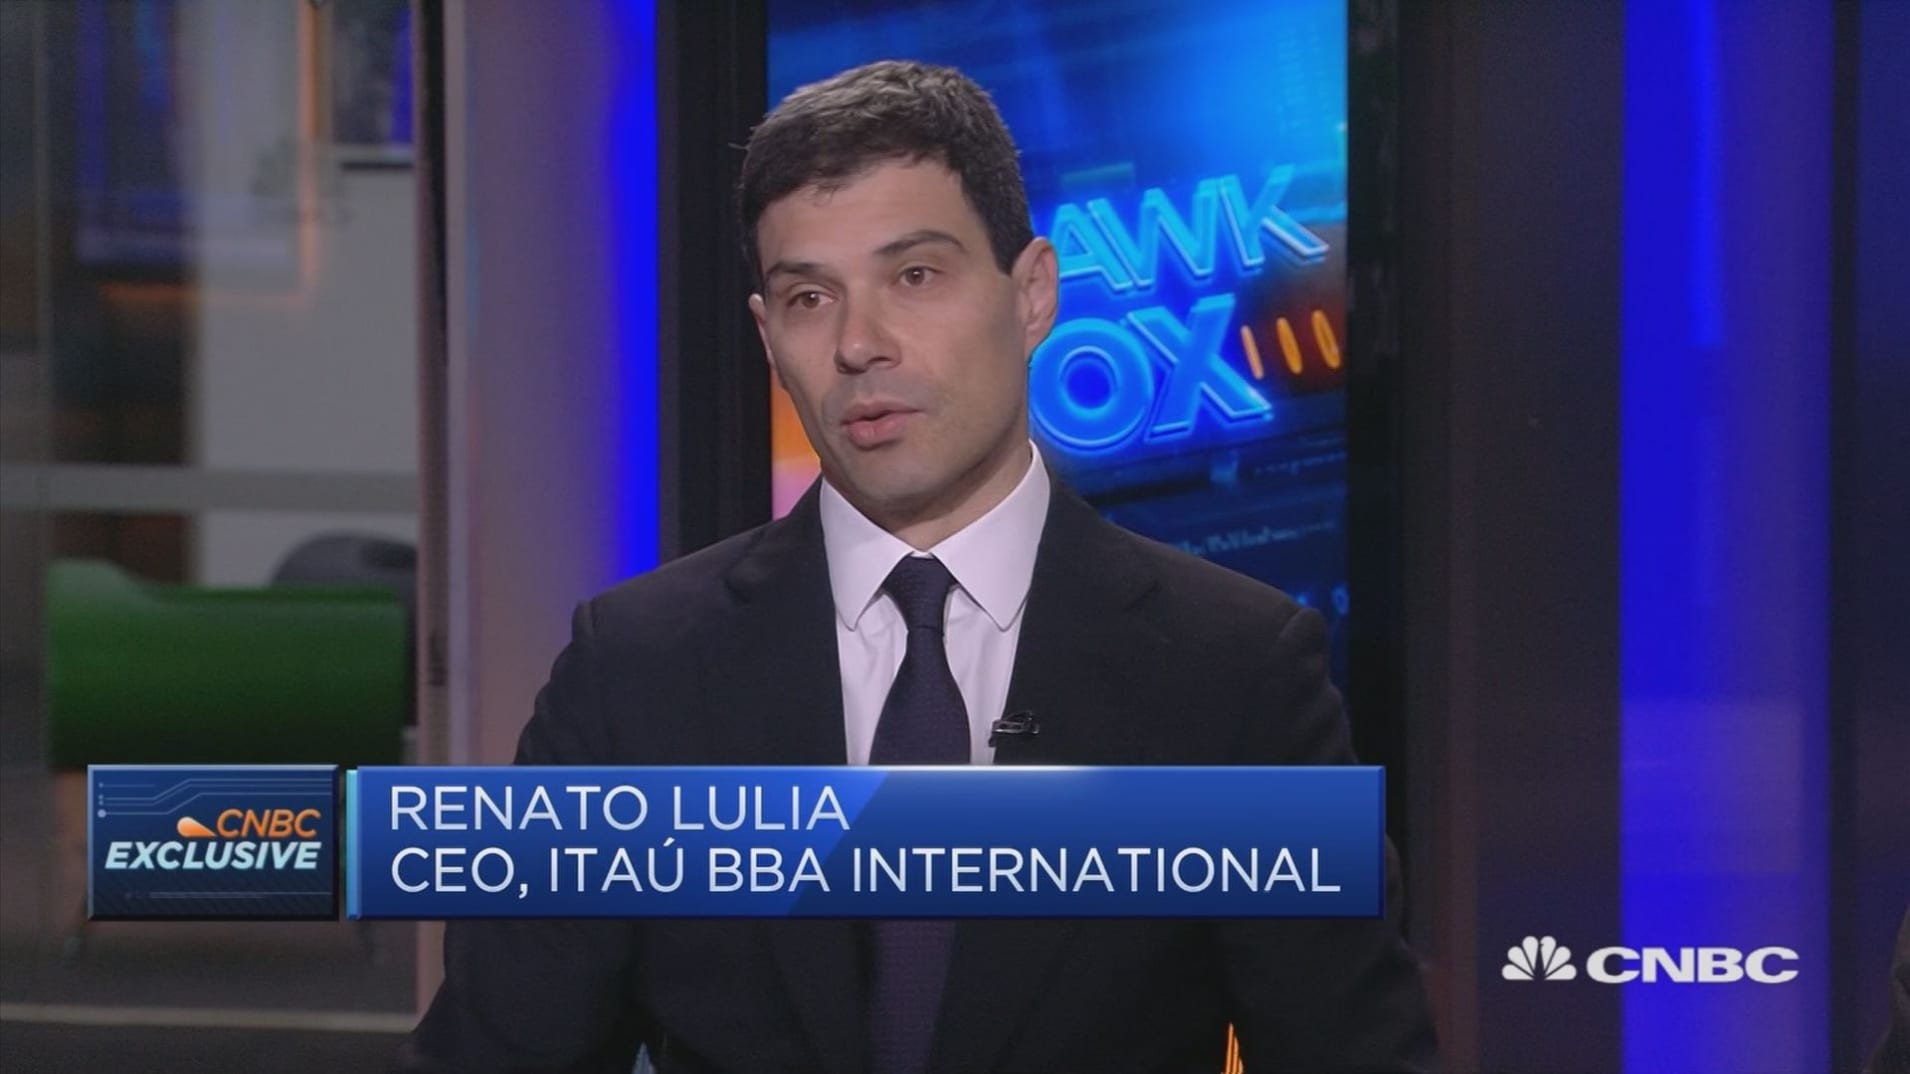 Pension, social security reforms are most important in Brazil: CEO